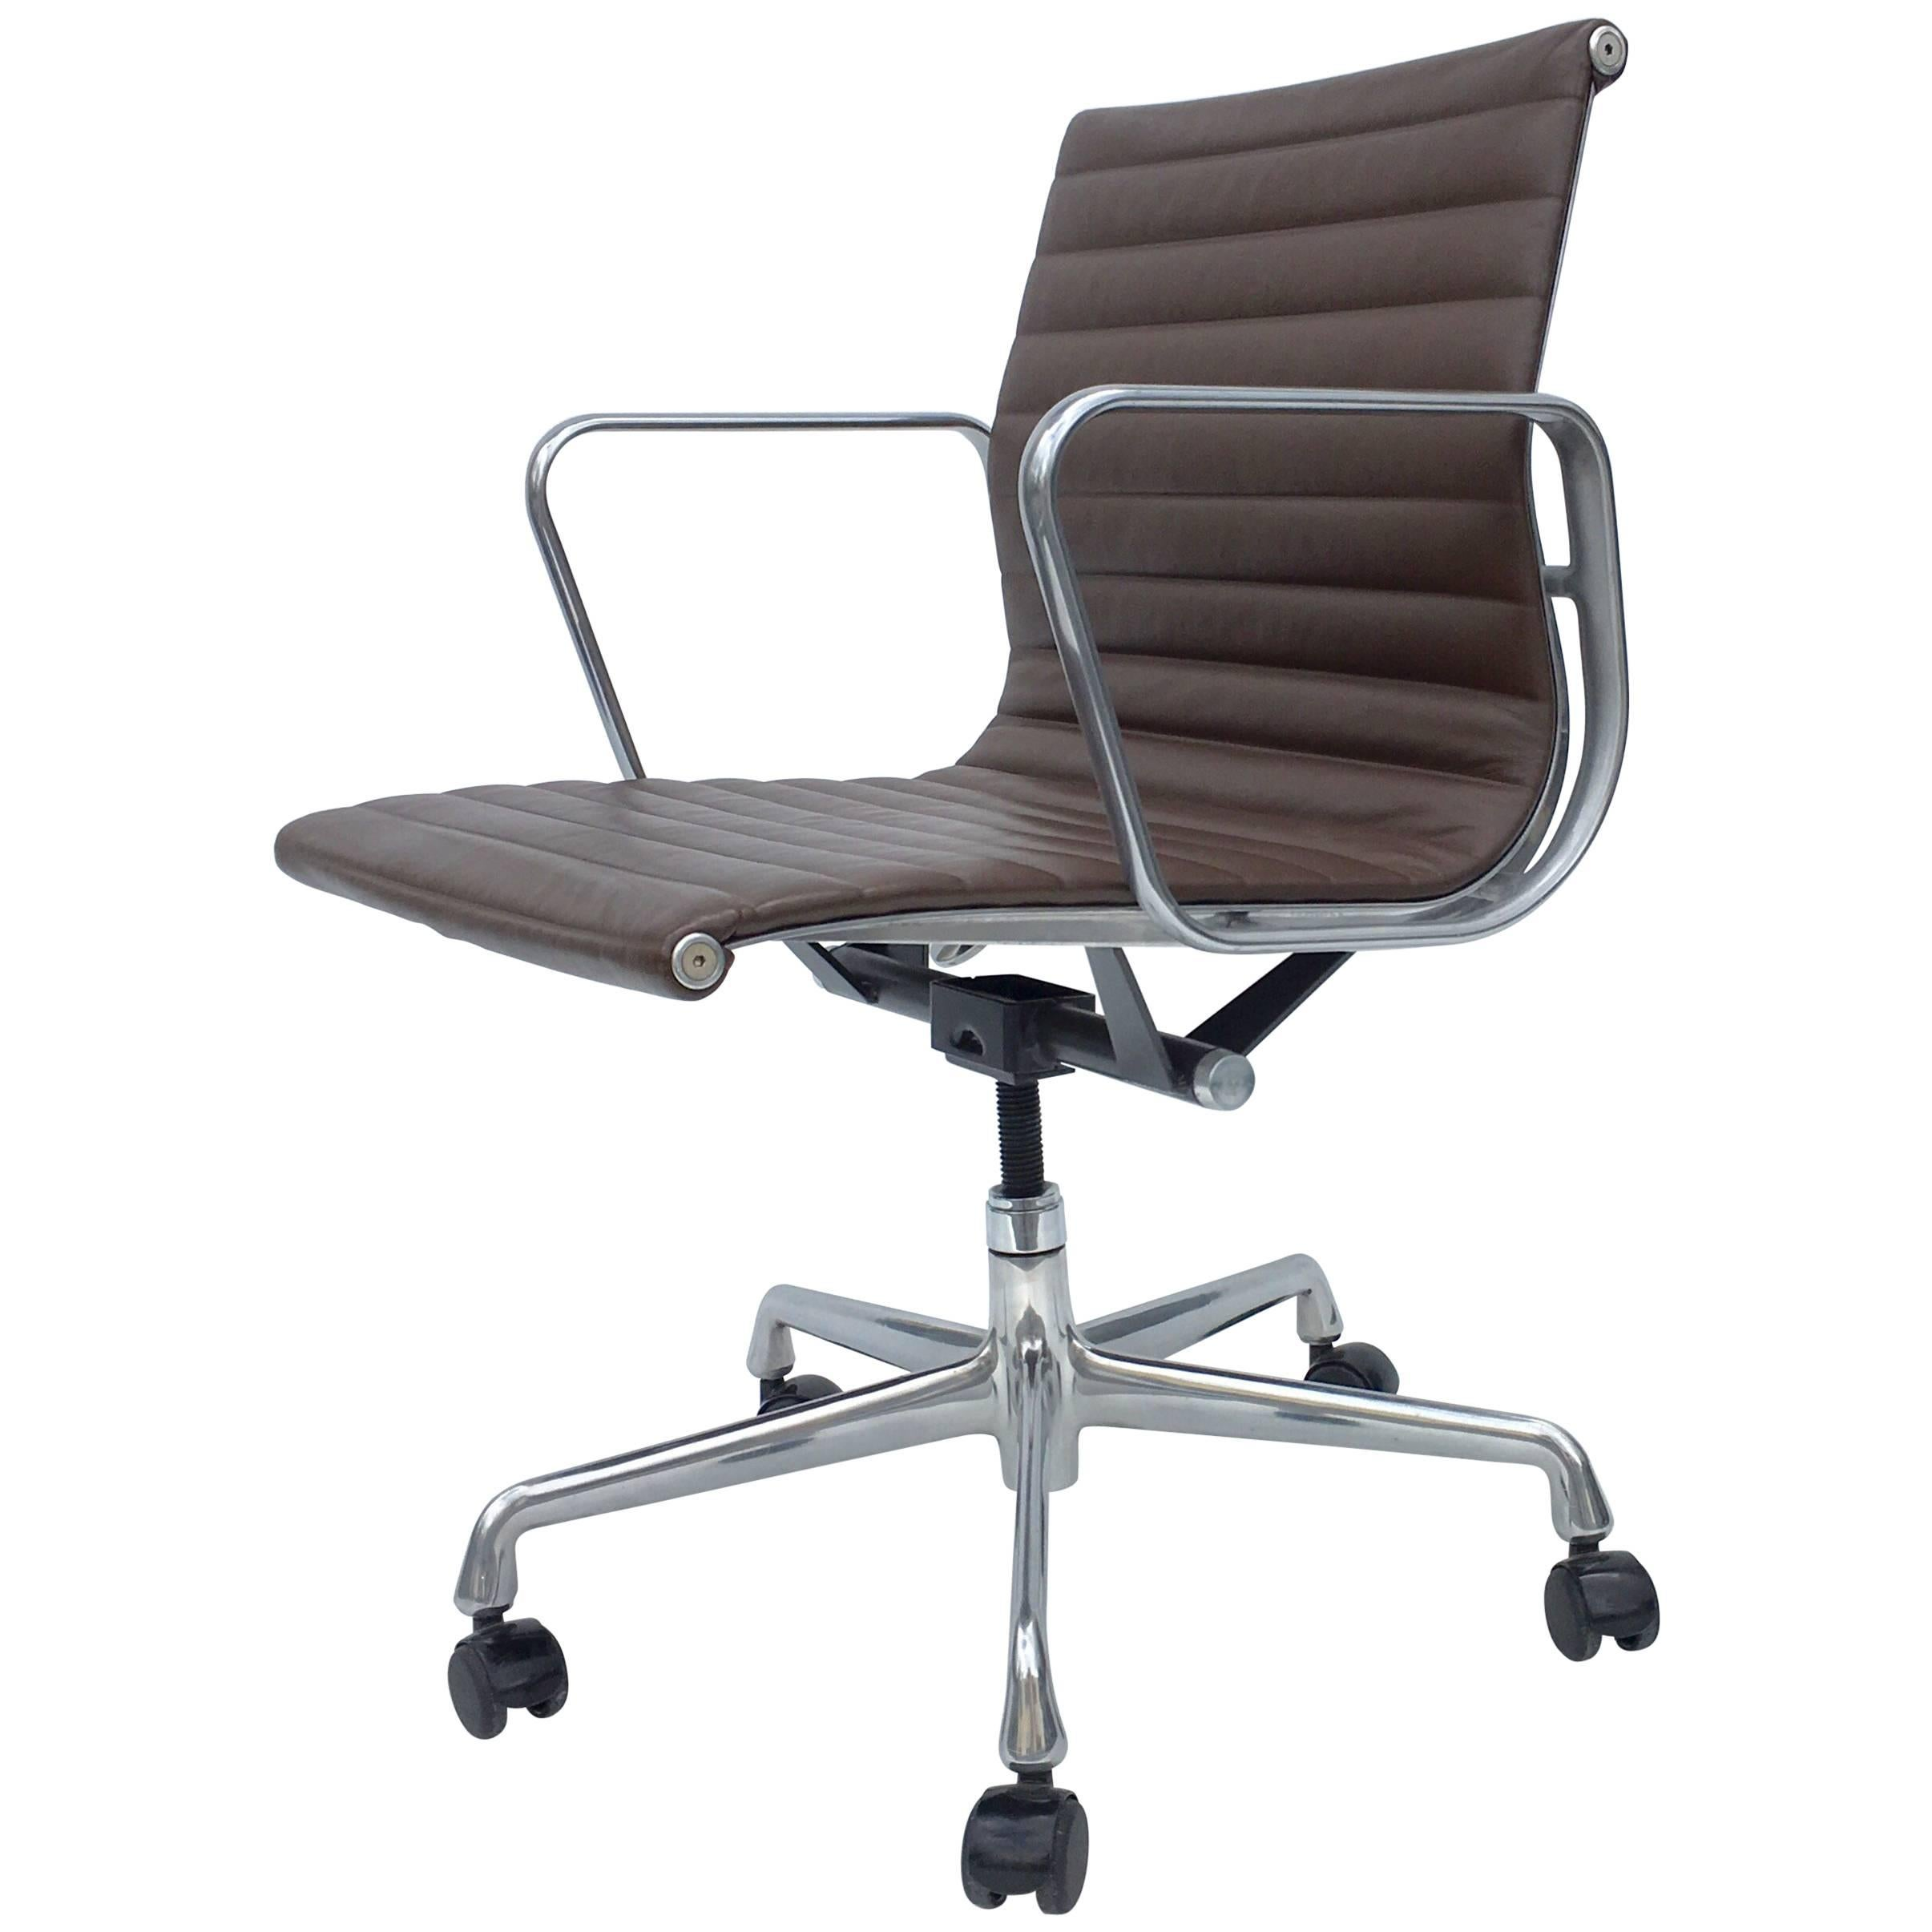 Uberlegen Eames Aluminium Management Chairs In Leather For Herman Miller